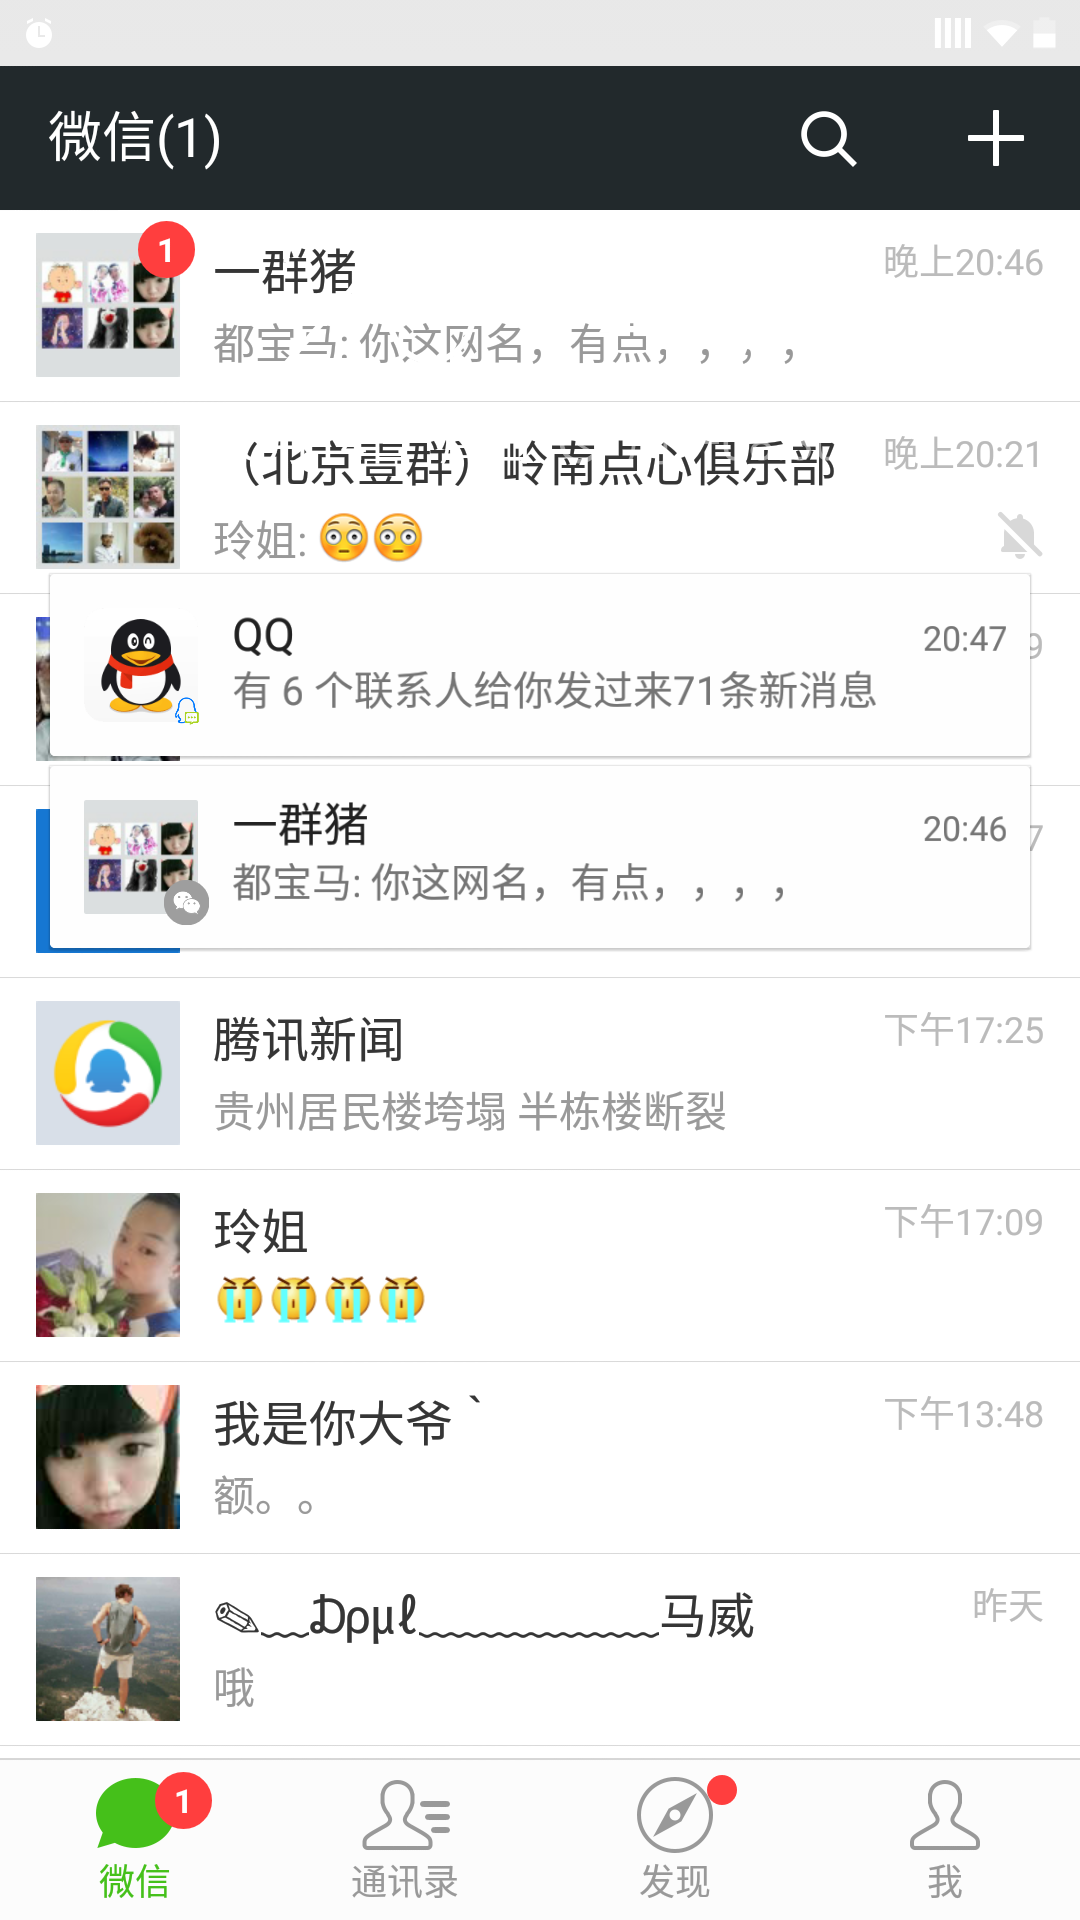 Screenshot_2015-06-14-20-47-23.png